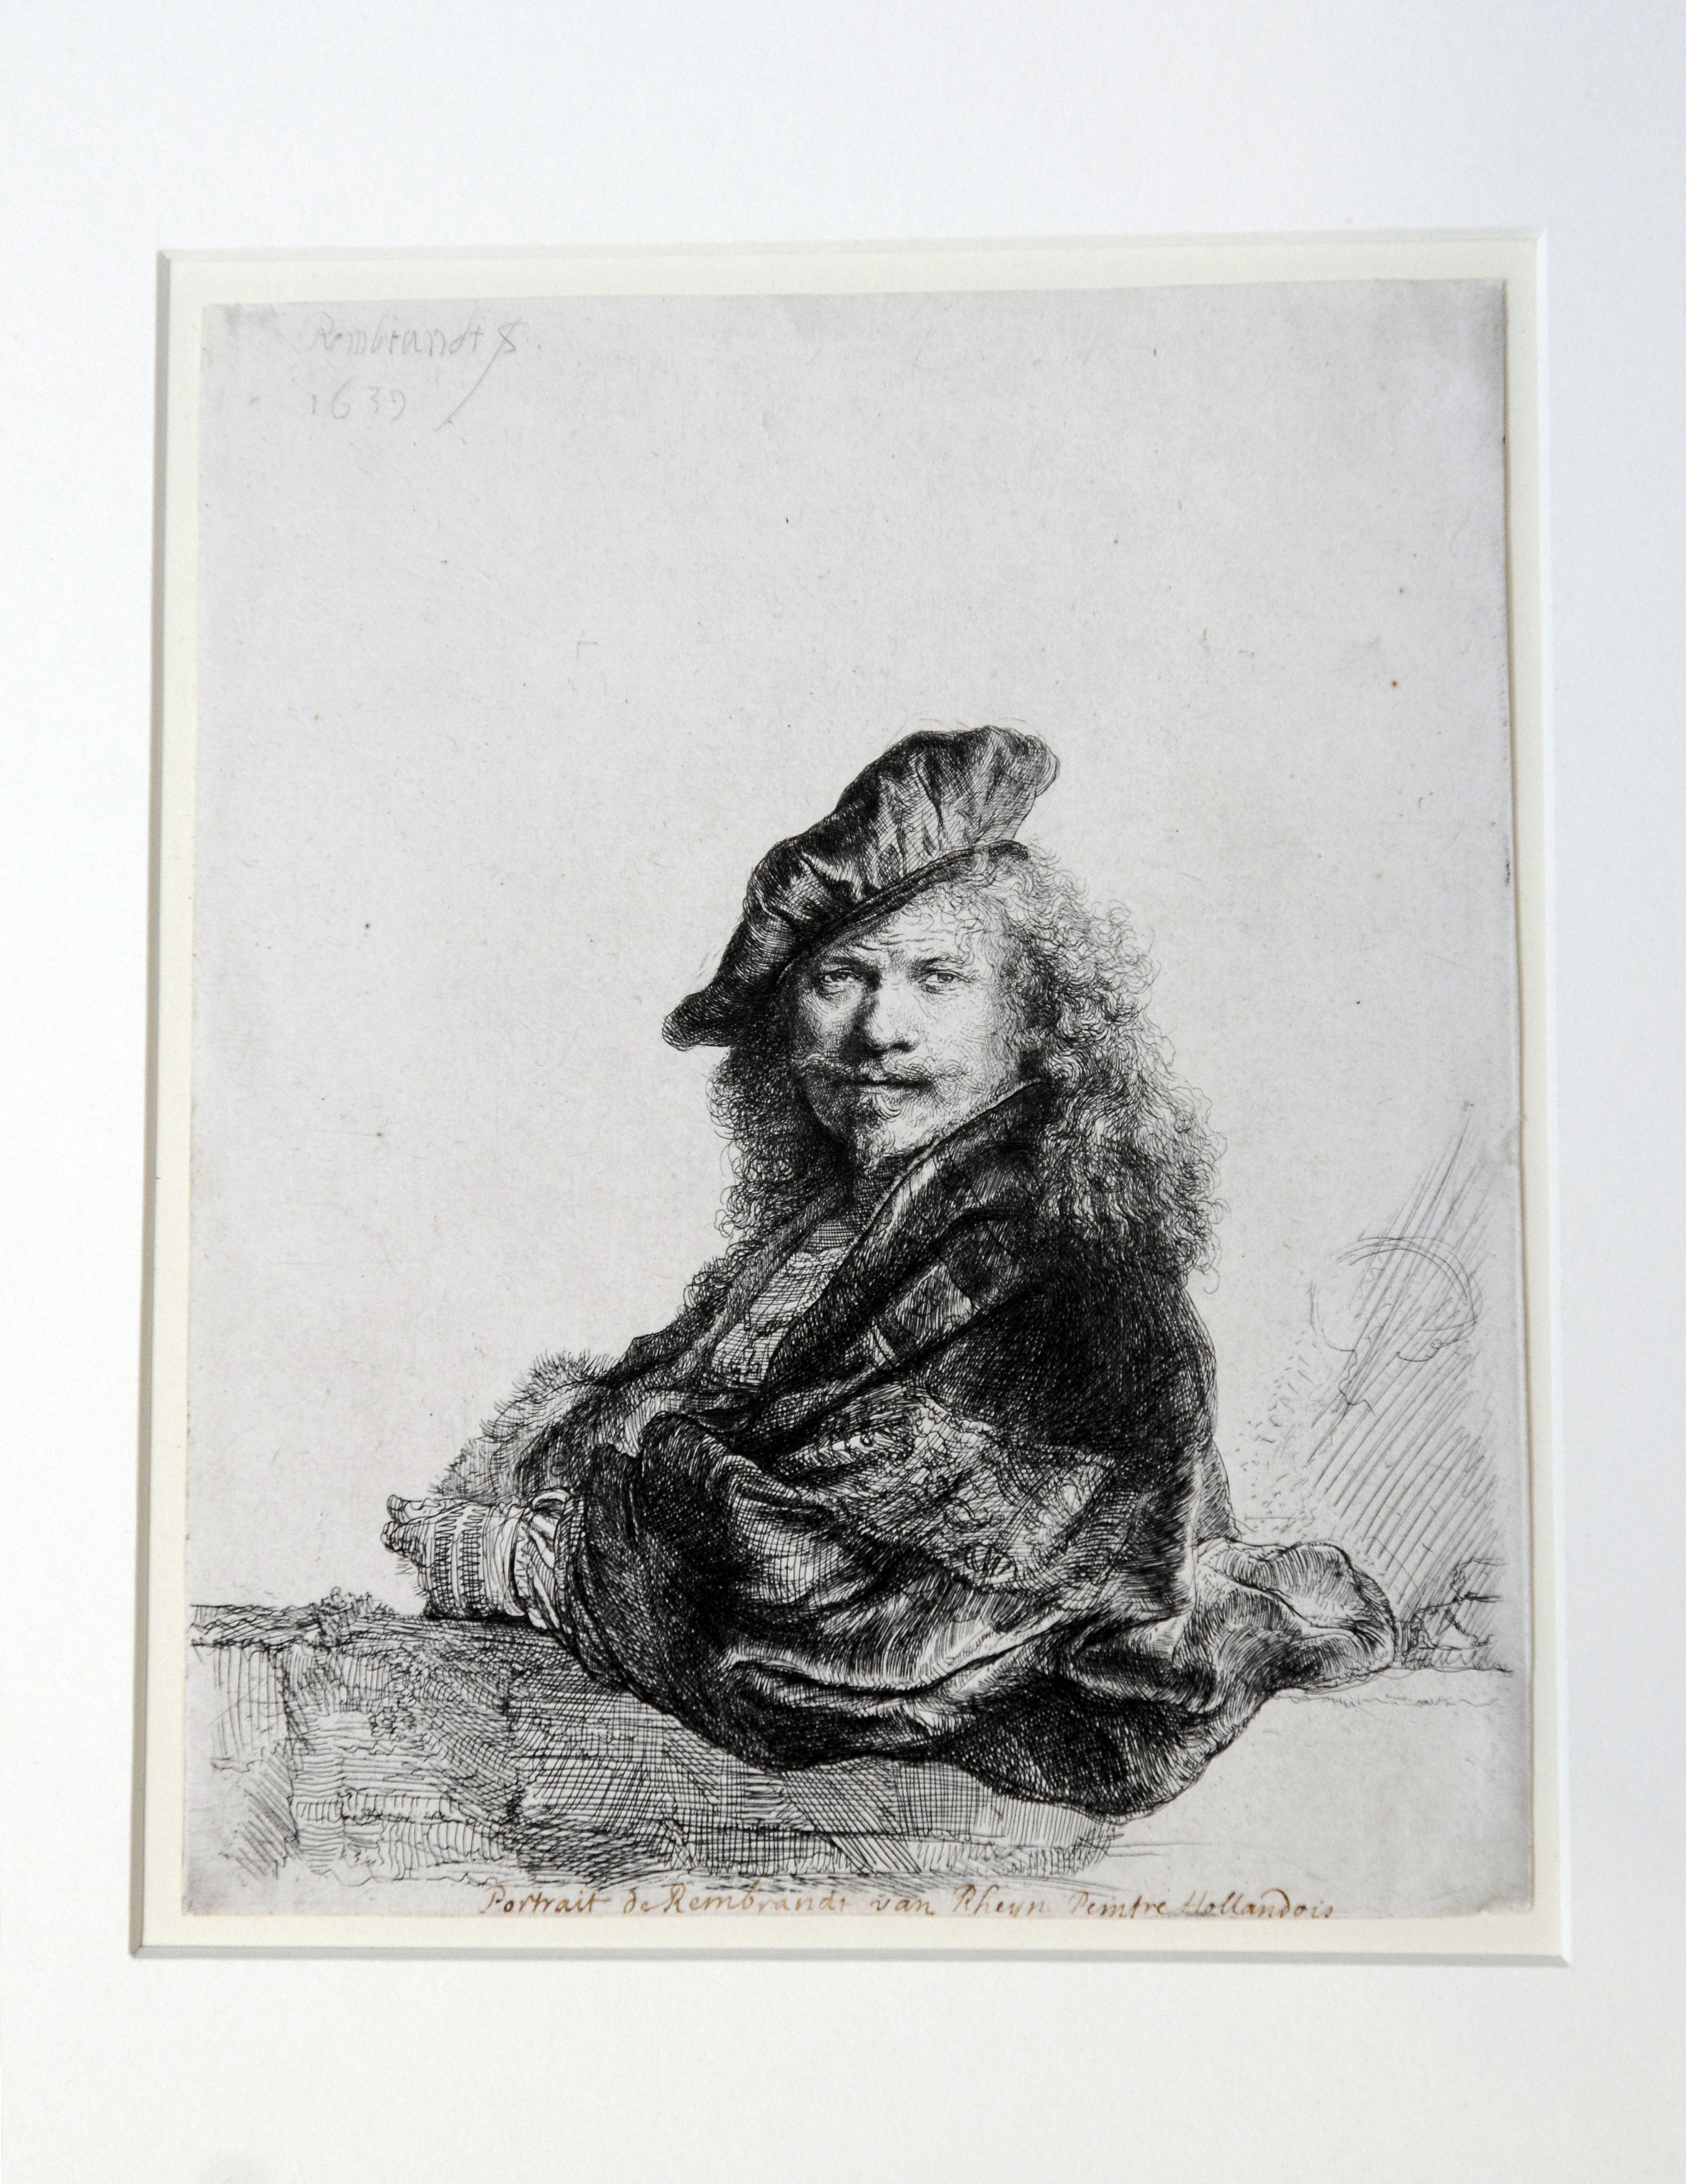 rembrandt senior personals Lost rembrandt found in edinburgh gallery vaults a self-portrait dating from 1657 and a women in bed from 1646 senior curator for northern european art.